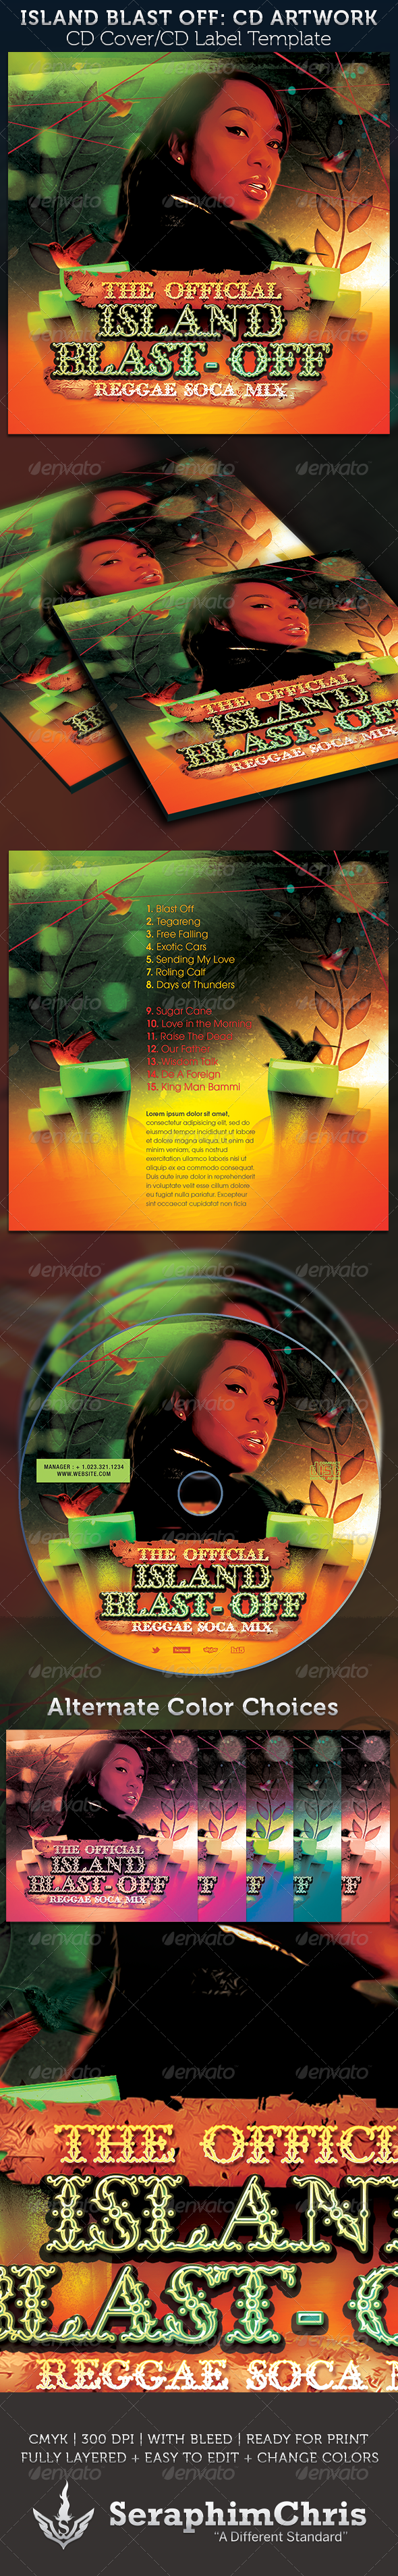 Island Blast Off: CD Cover Artwork Template - CD & DVD Artwork Print Templates